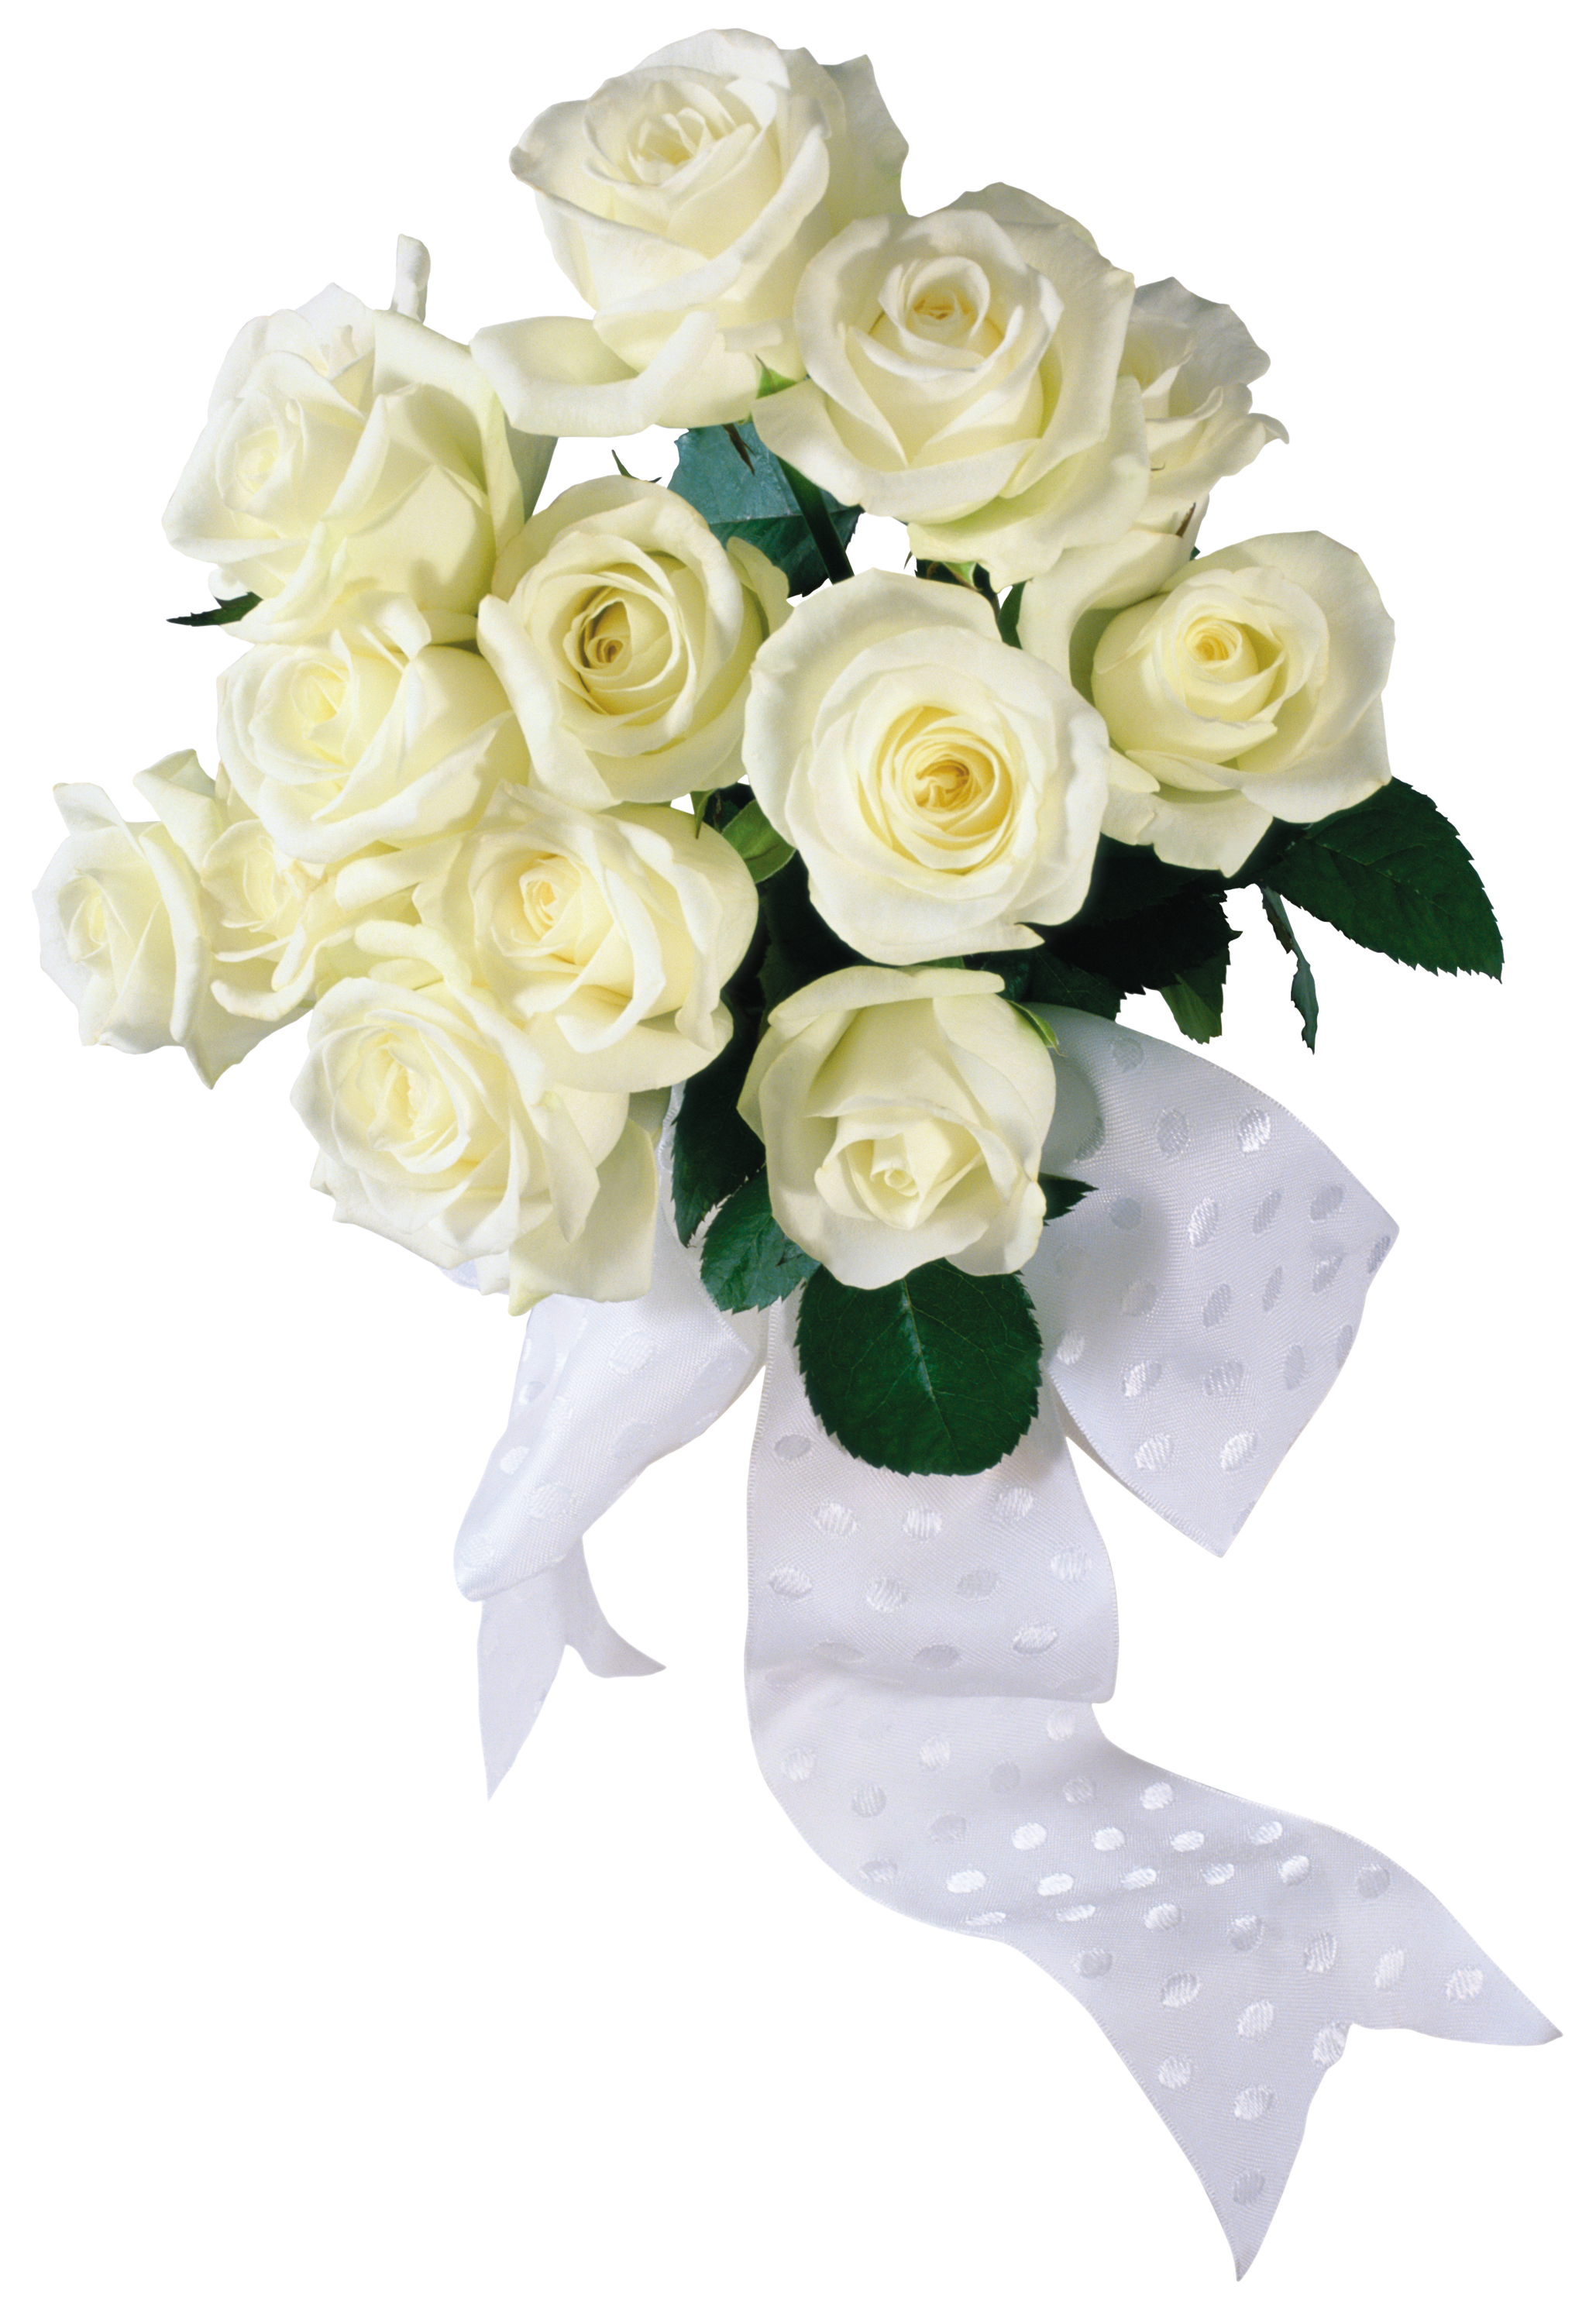 Bouquet Of White Roses Transparent Png Clipart Free Download Ya